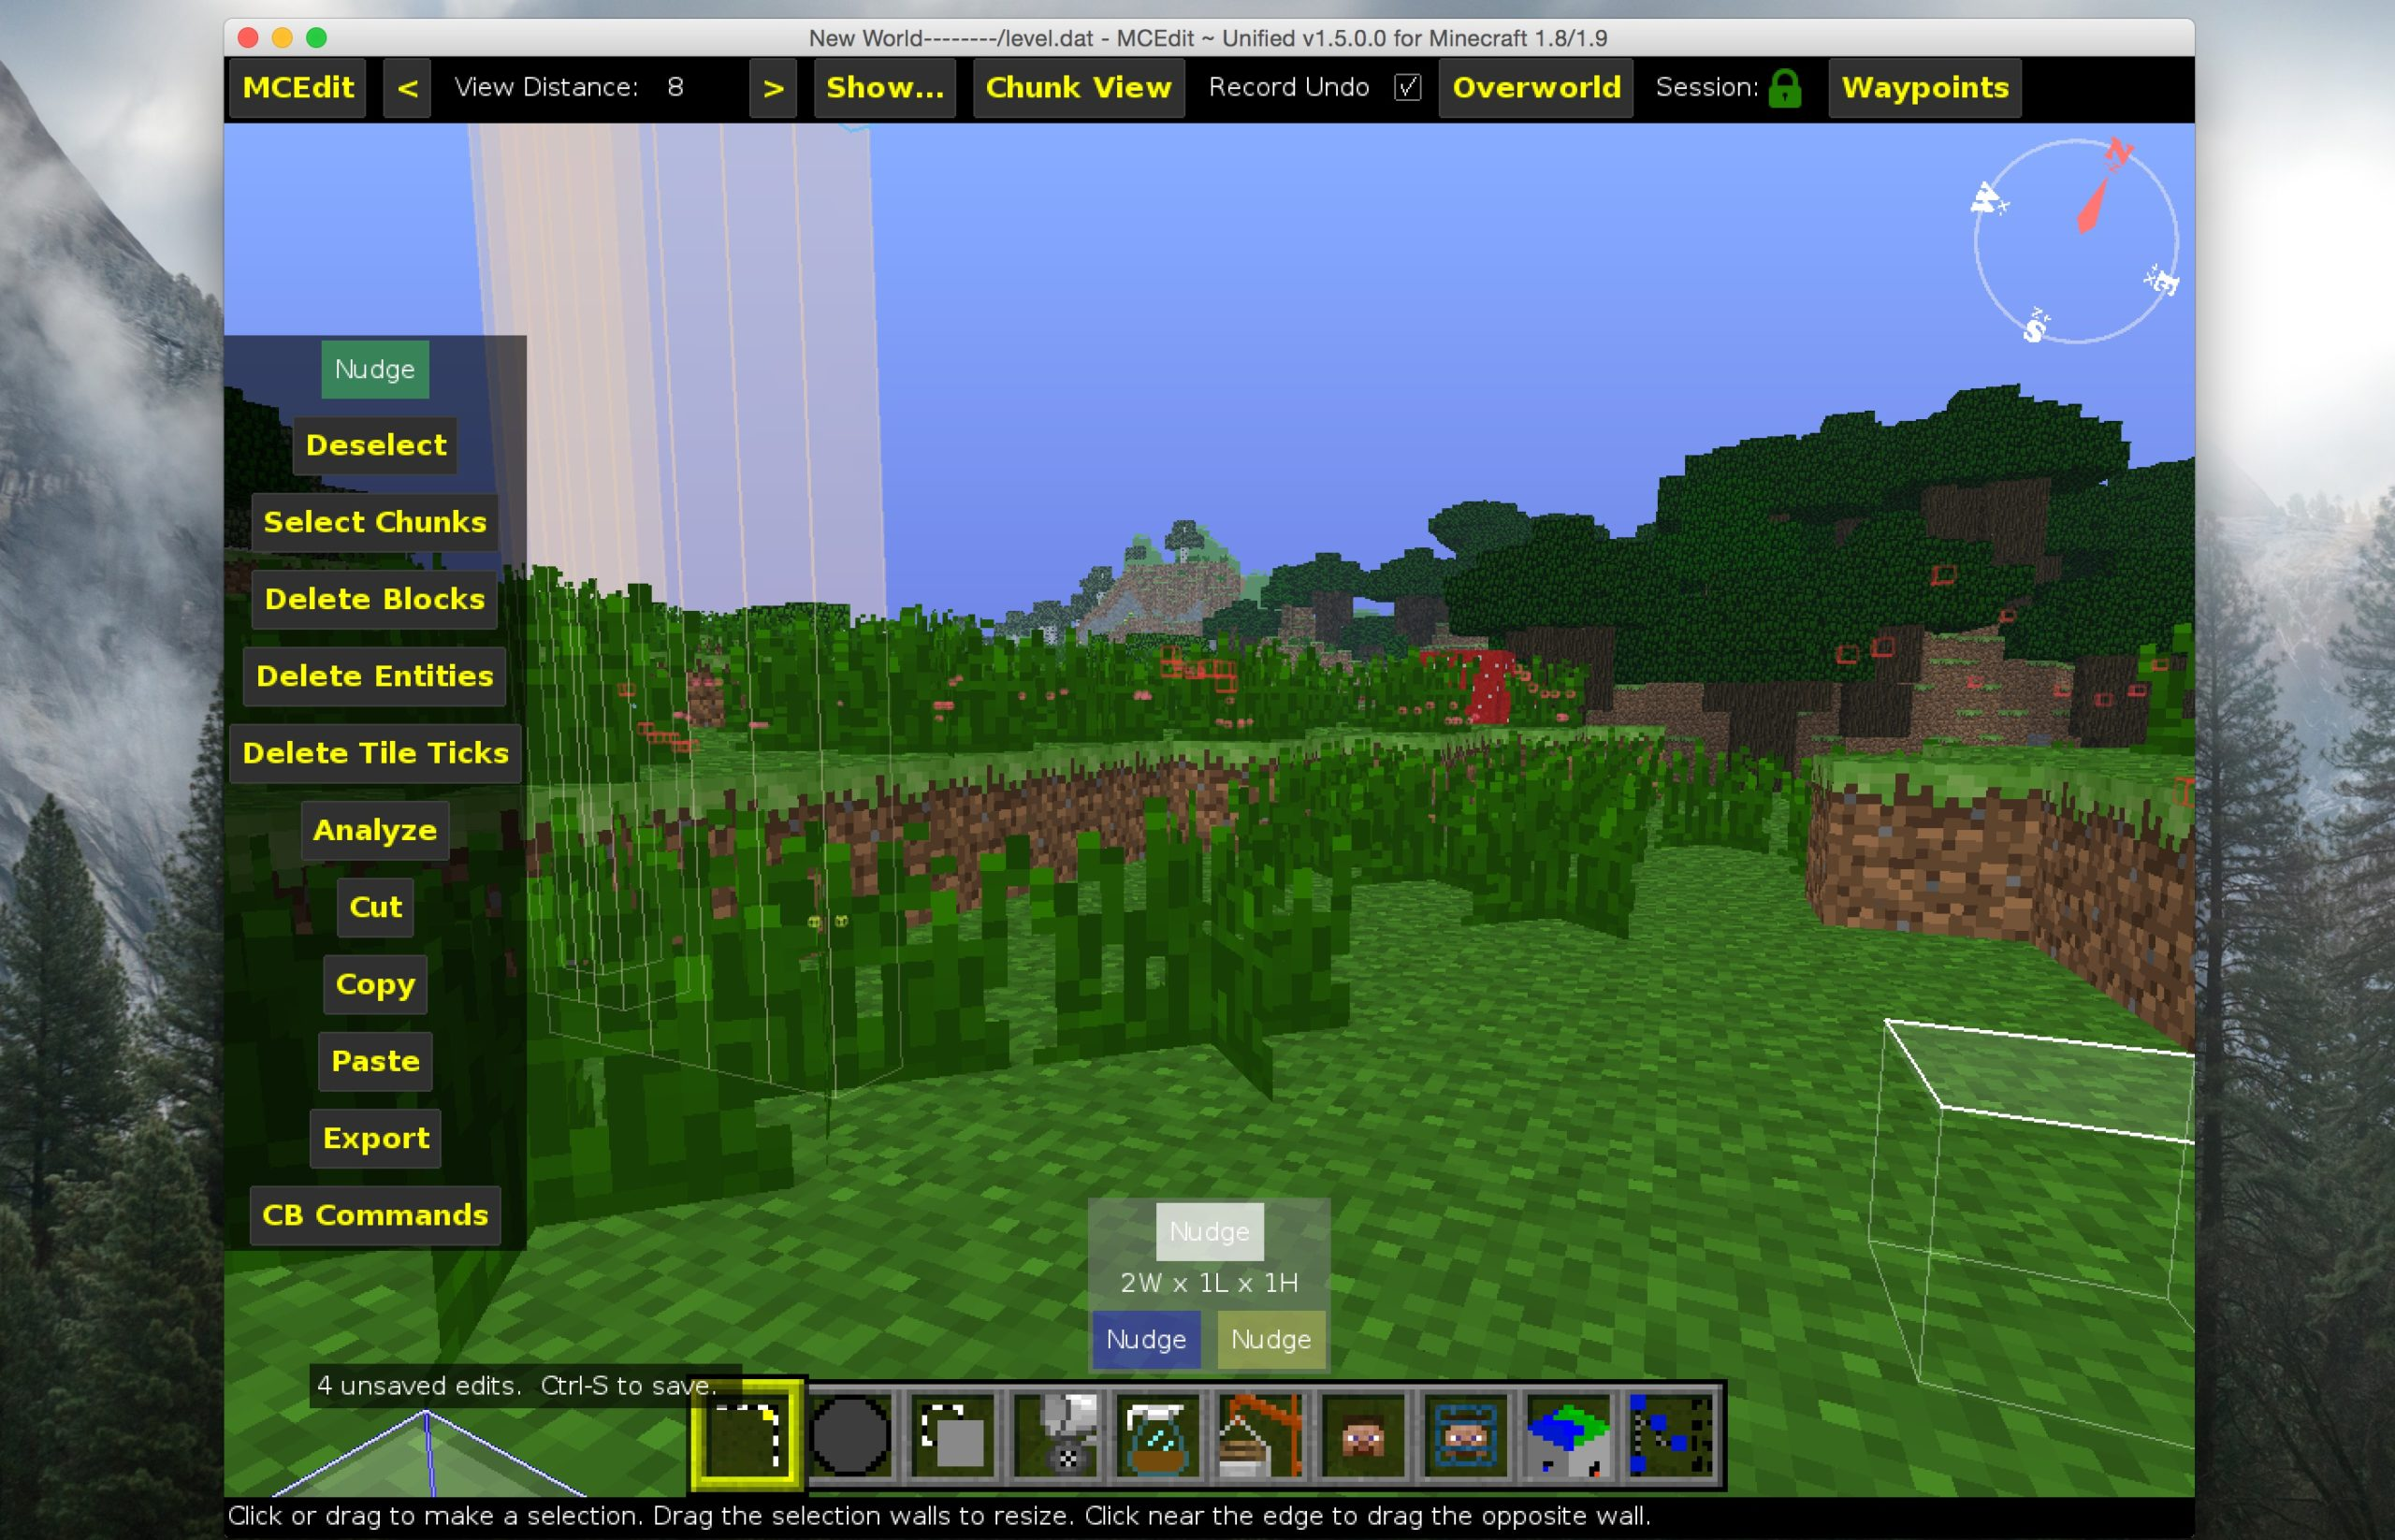 New_World --------_ level_dat _-_ MCEdit___Unified_v1_5_0_0_for_Minecraft_1_8_1_9